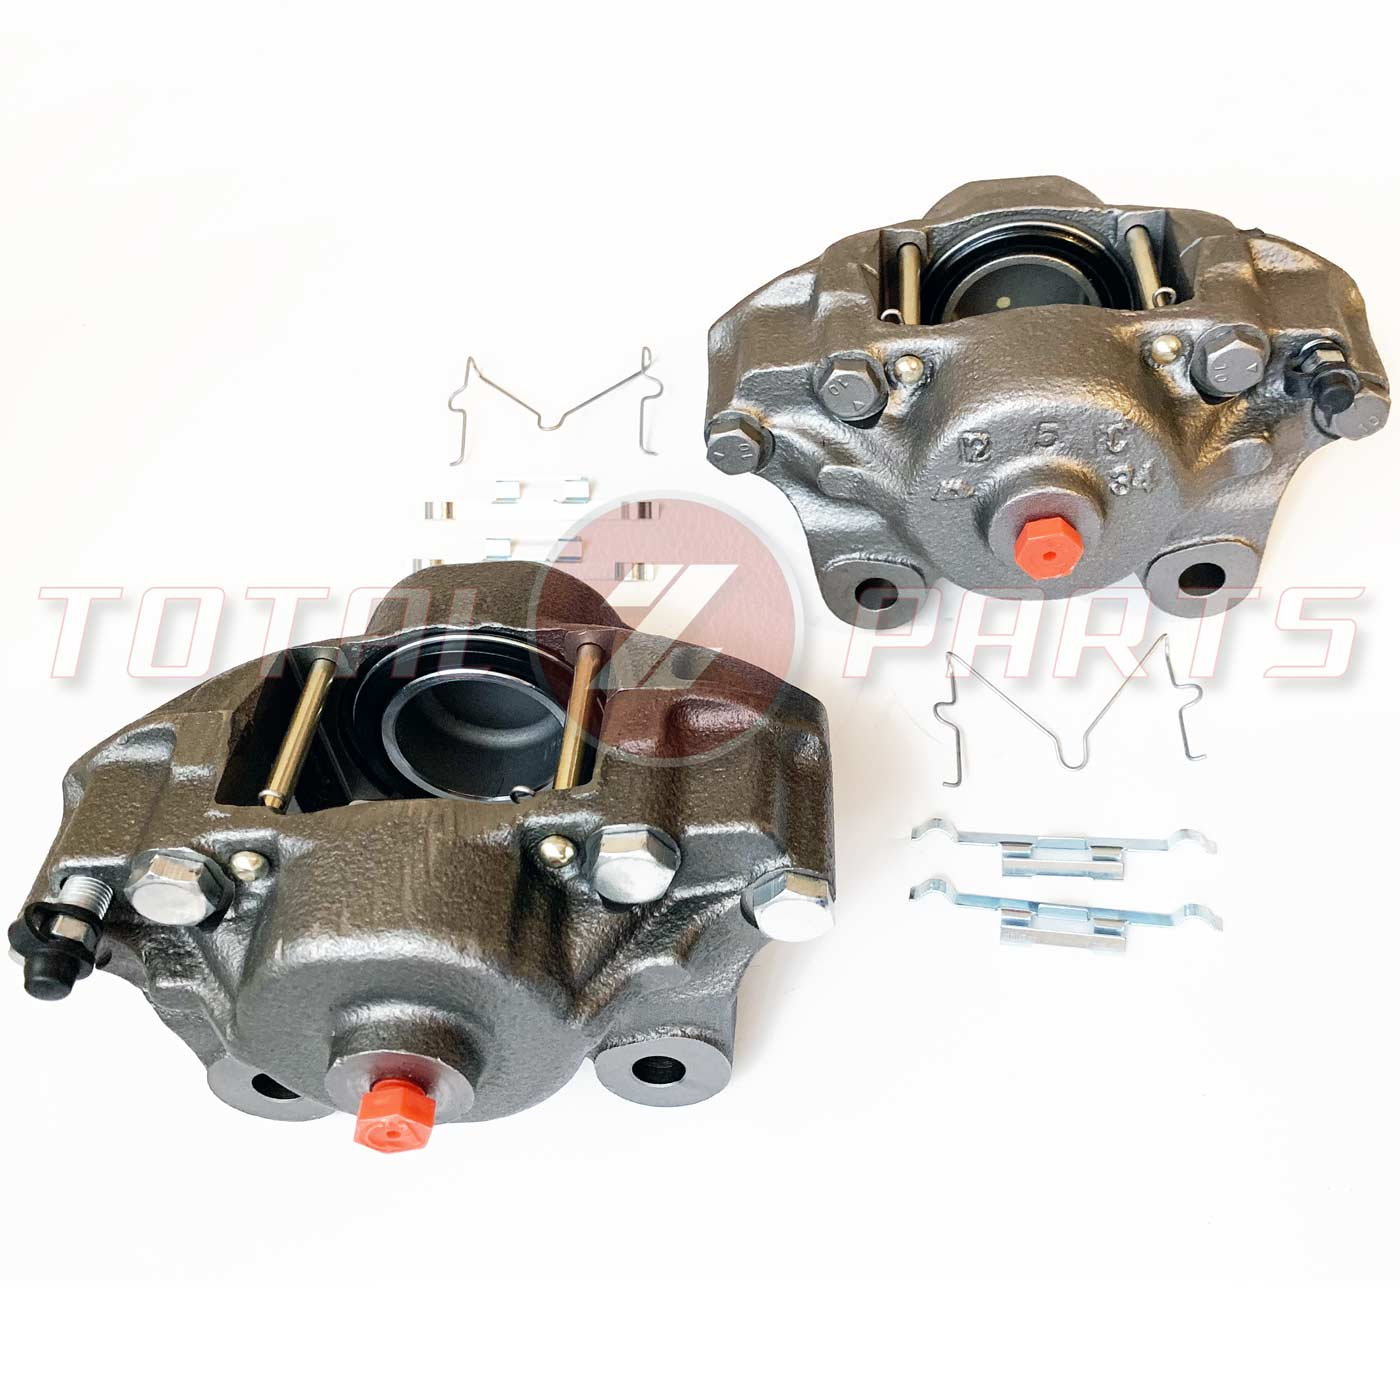 TotalZParts_Remanufactured-Front-Brake-Calipers-Set